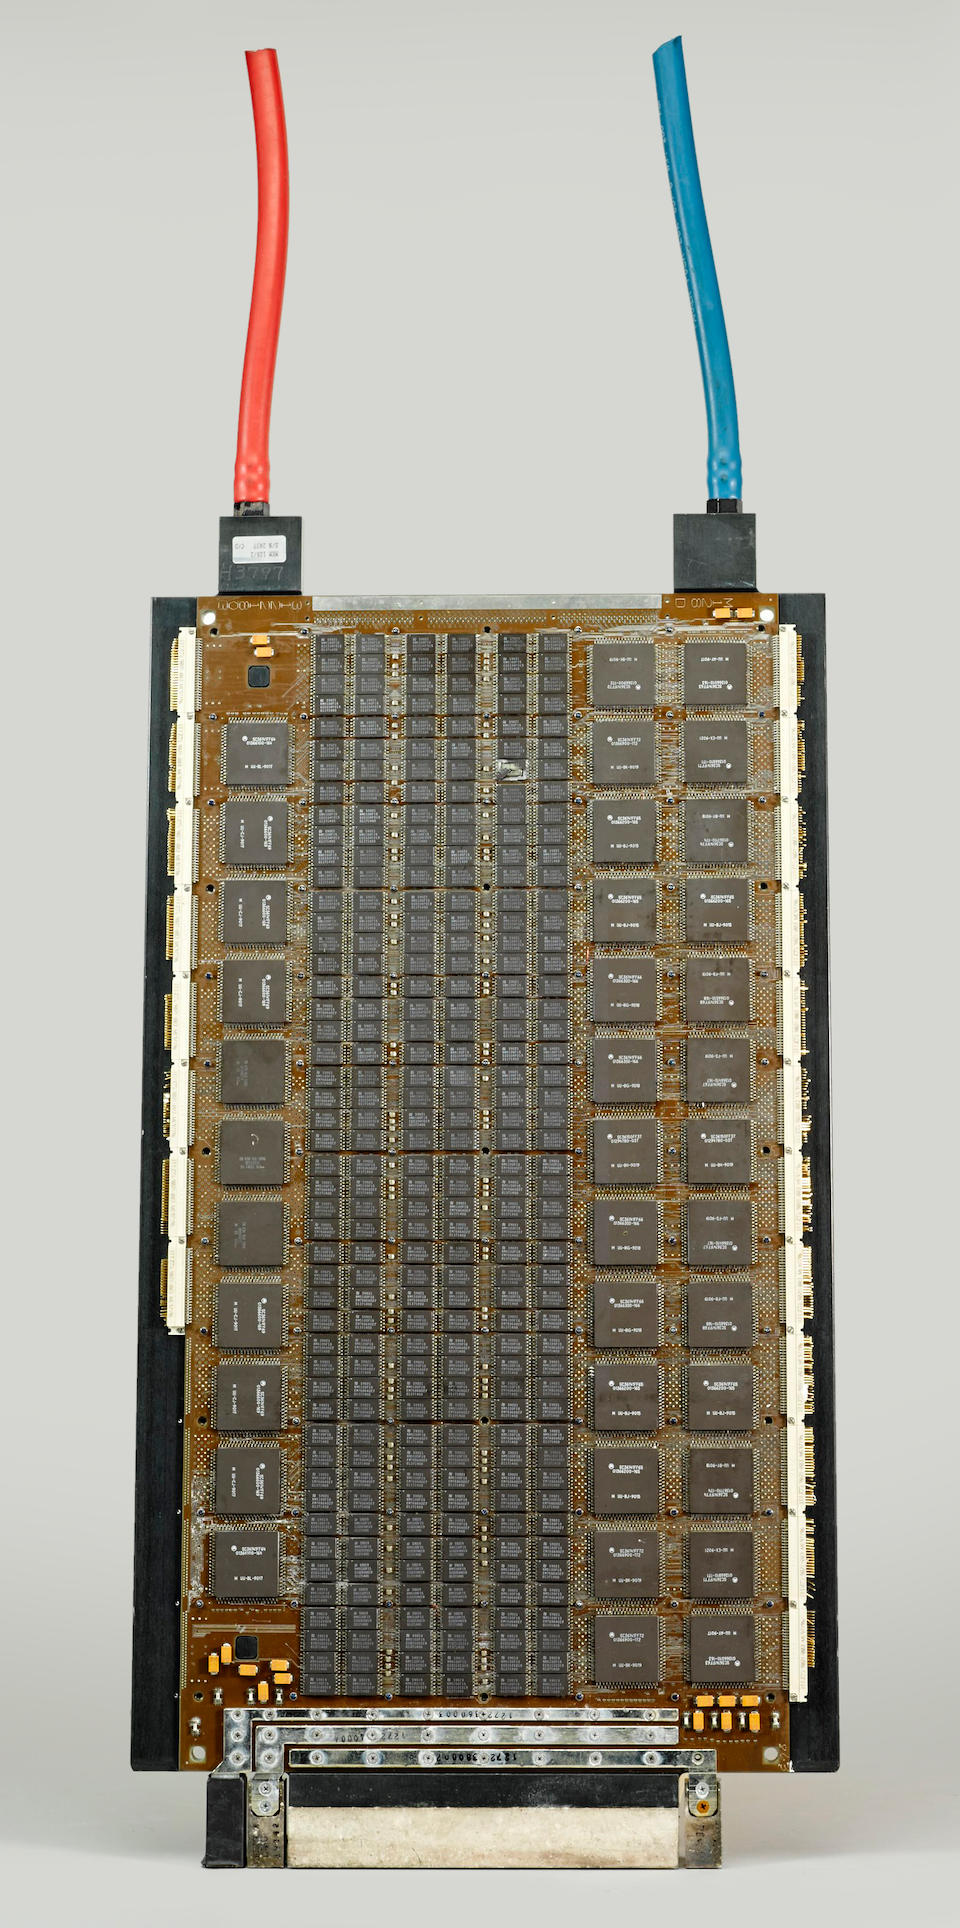 CRAY SUPERCOMPUTERS. Collection of 16 Supercomputer Modules & Components including: